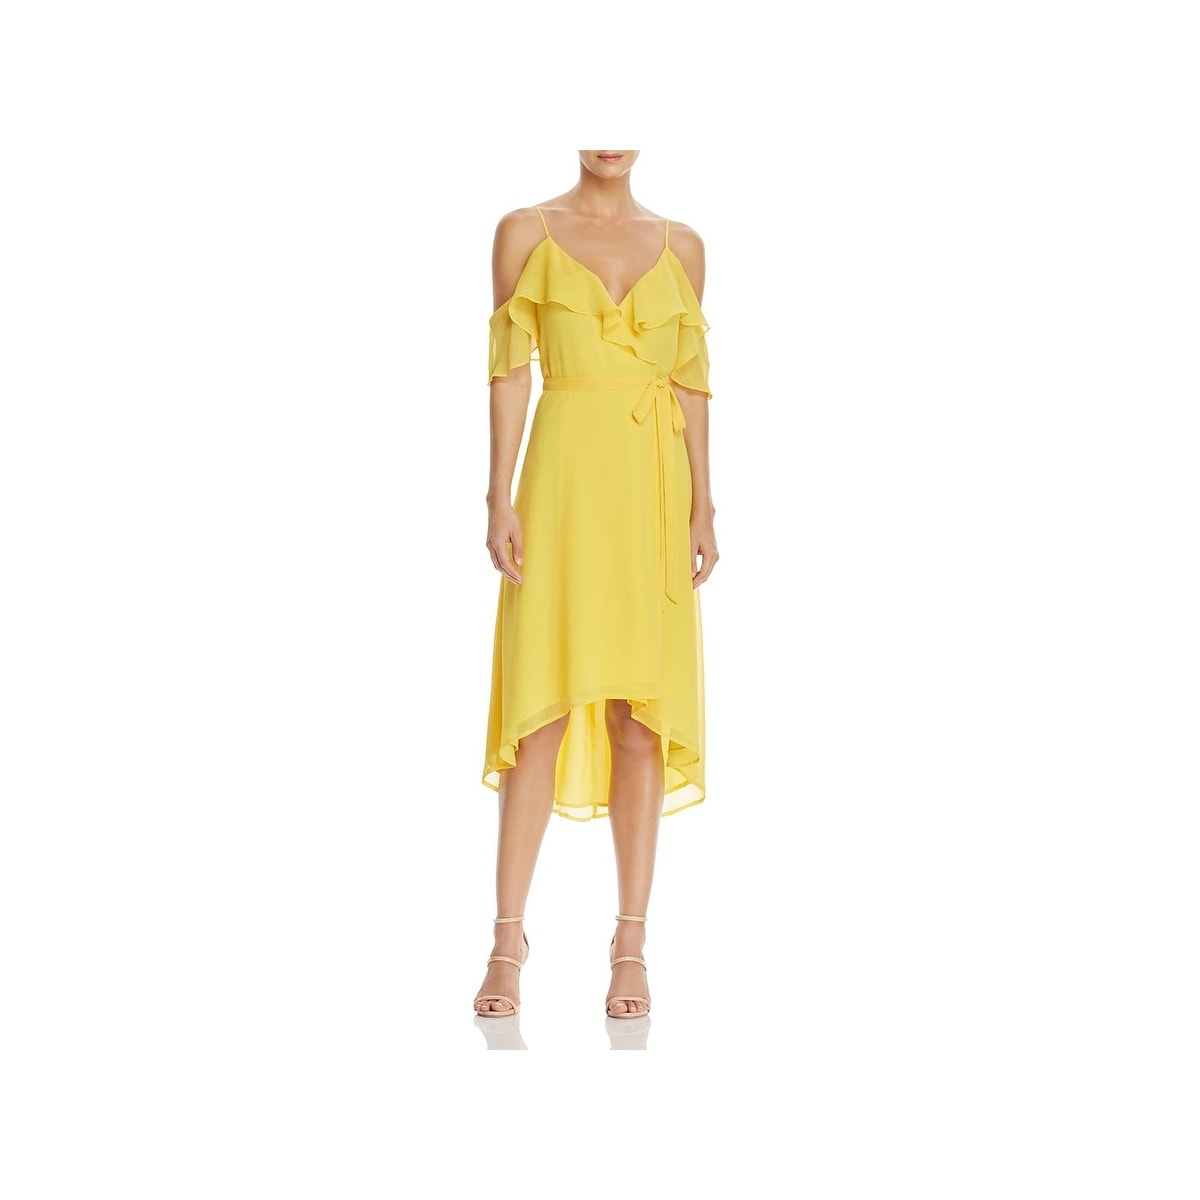 6d8cc8a7ea WAYF Dresses | Find Great Women's Clothing Deals Shopping at Overstock